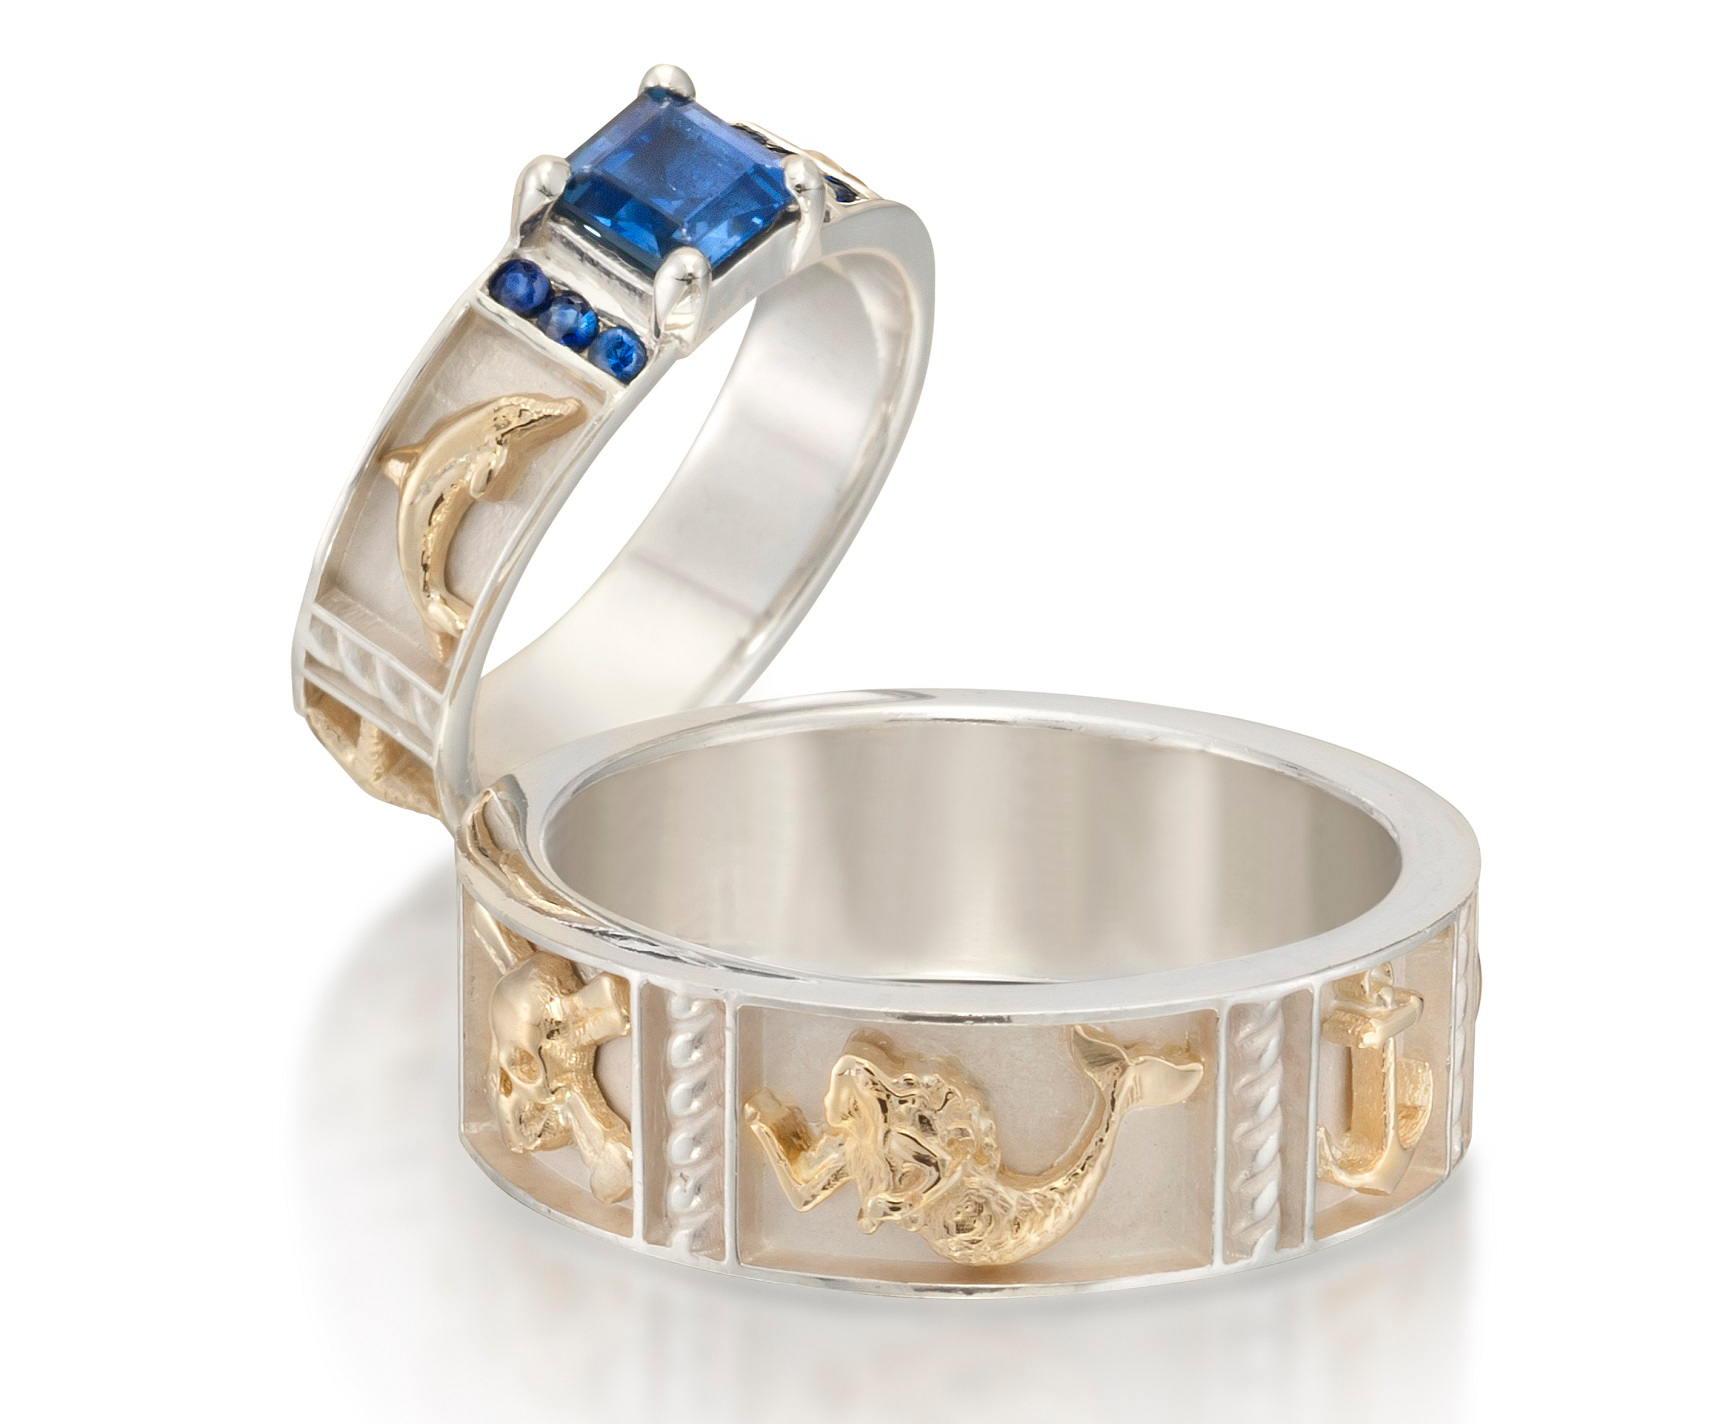 Alexis Barbeau Nautical Reef wedding set